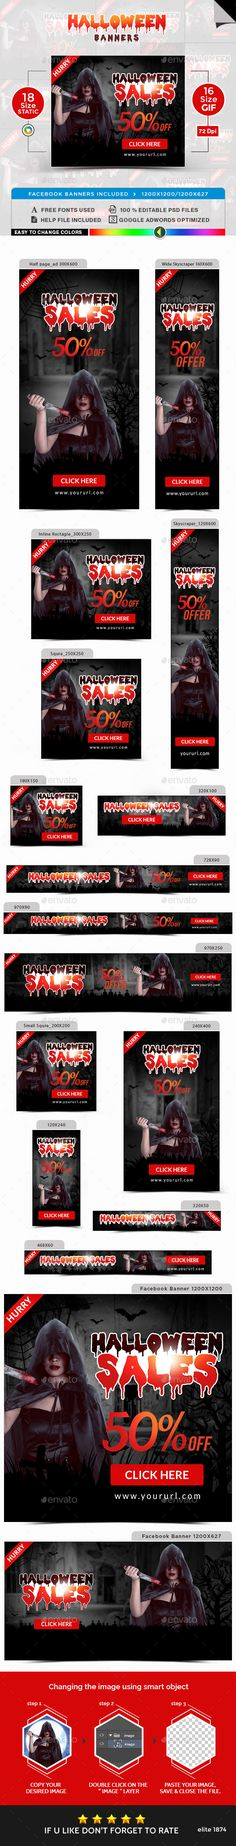 Halloween Banners - Animated and Static Banners